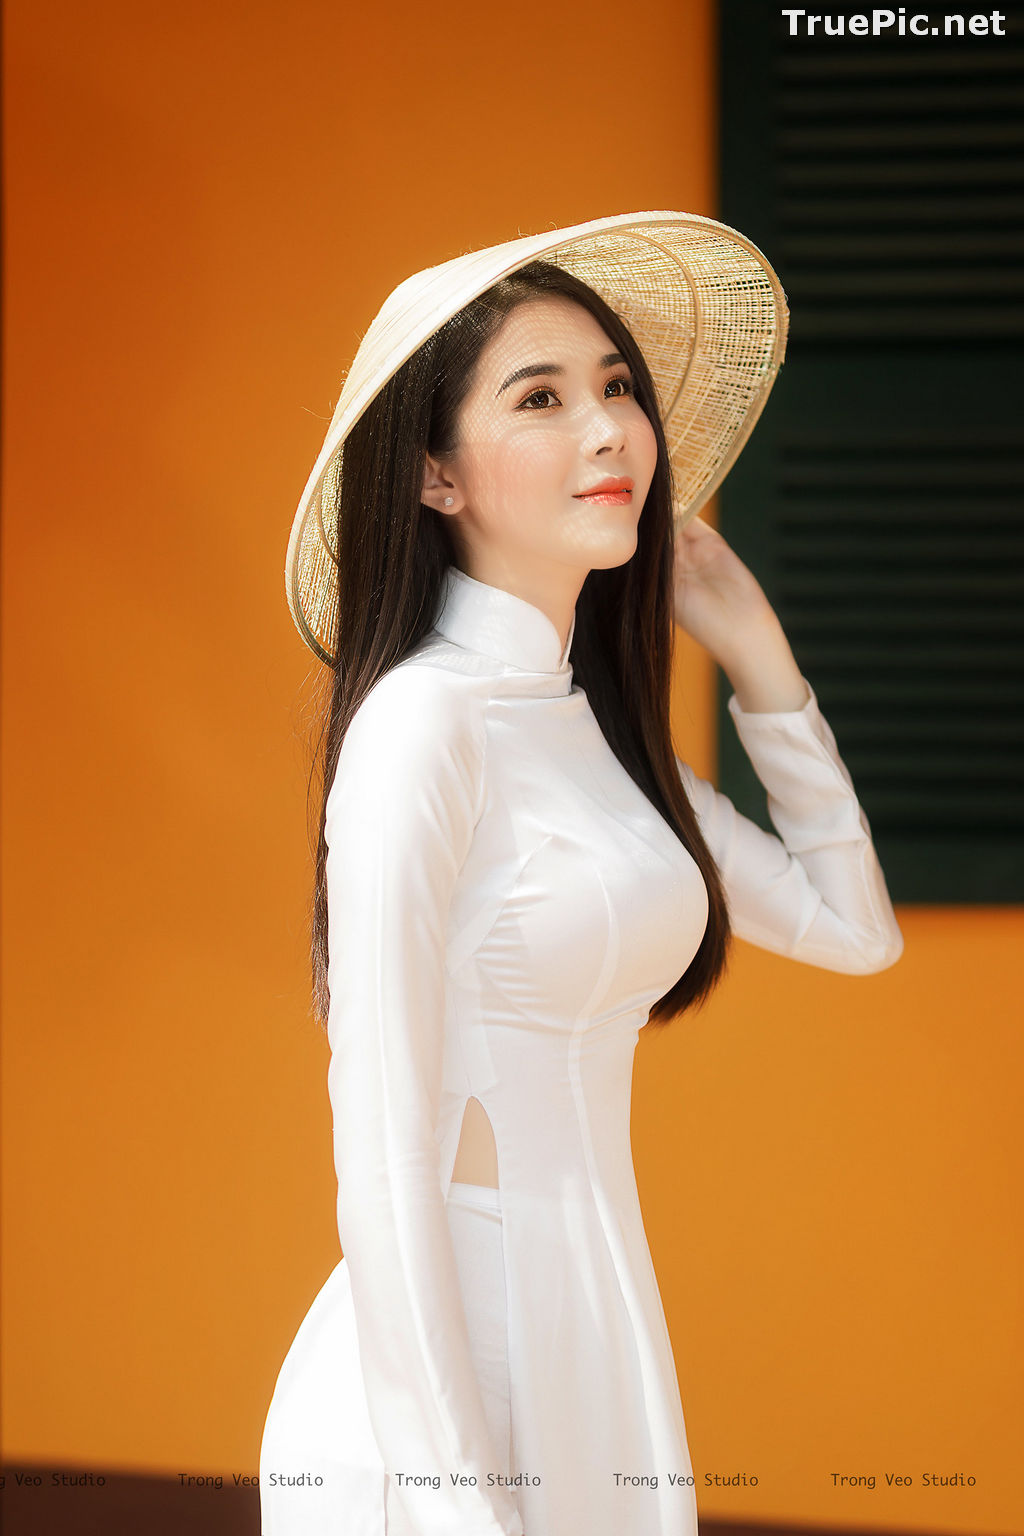 Image The Beauty of Vietnamese Girls with Traditional Dress (Ao Dai) #2 - TruePic.net - Picture-8